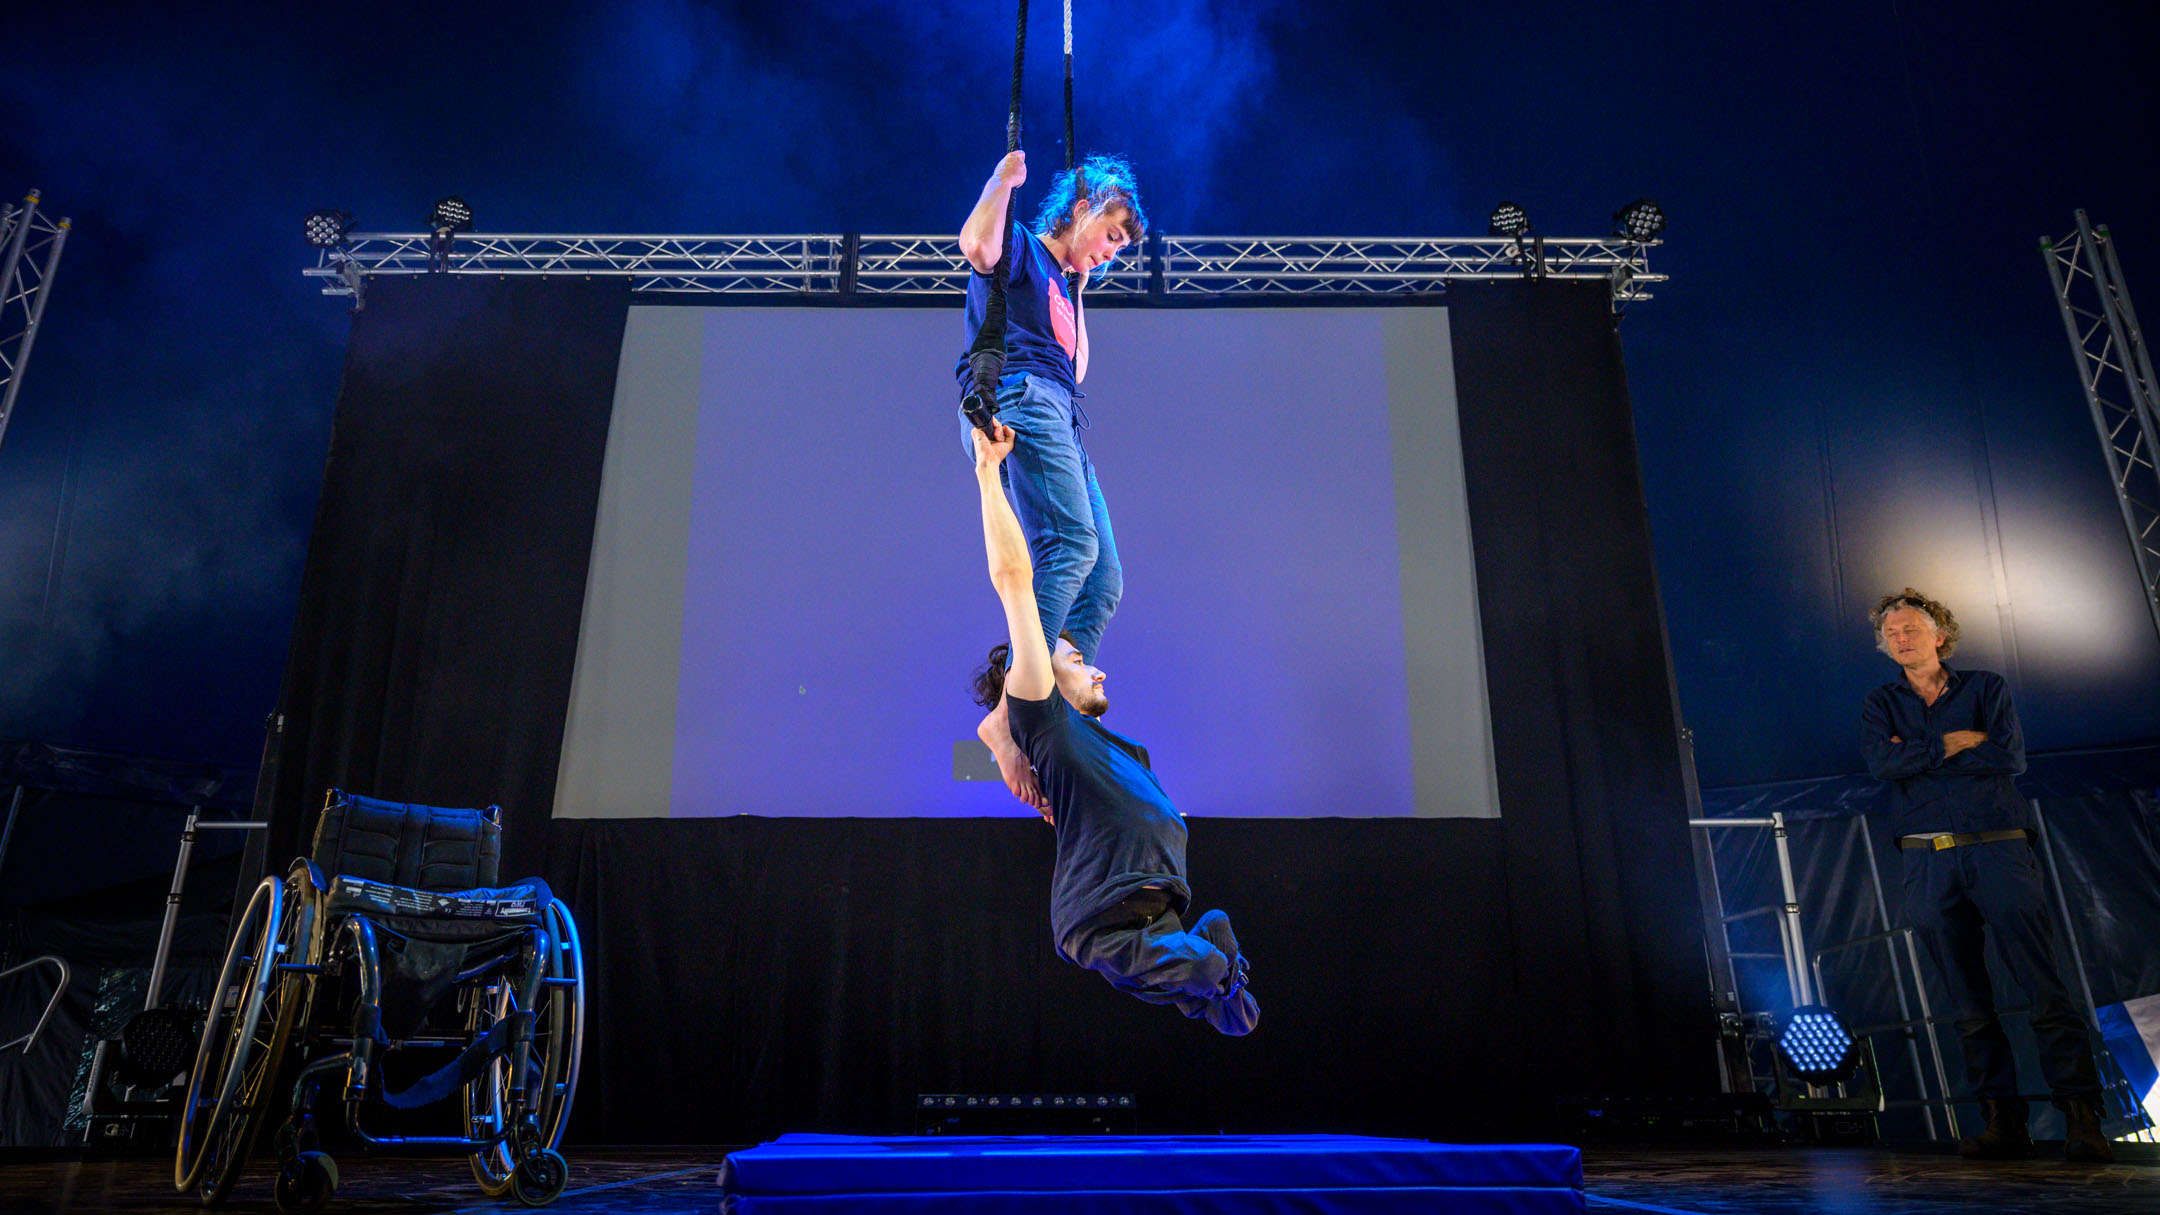 Indoors circus stage. A white woman in her twenties sits on a trapeze, her hands holding the ropes on each side. A white man in his twenties and wheelchair user holds himself up in the air below her by holding onto the trapeze bar. Her legs extend down to his upper back, her feet by his shoulders.